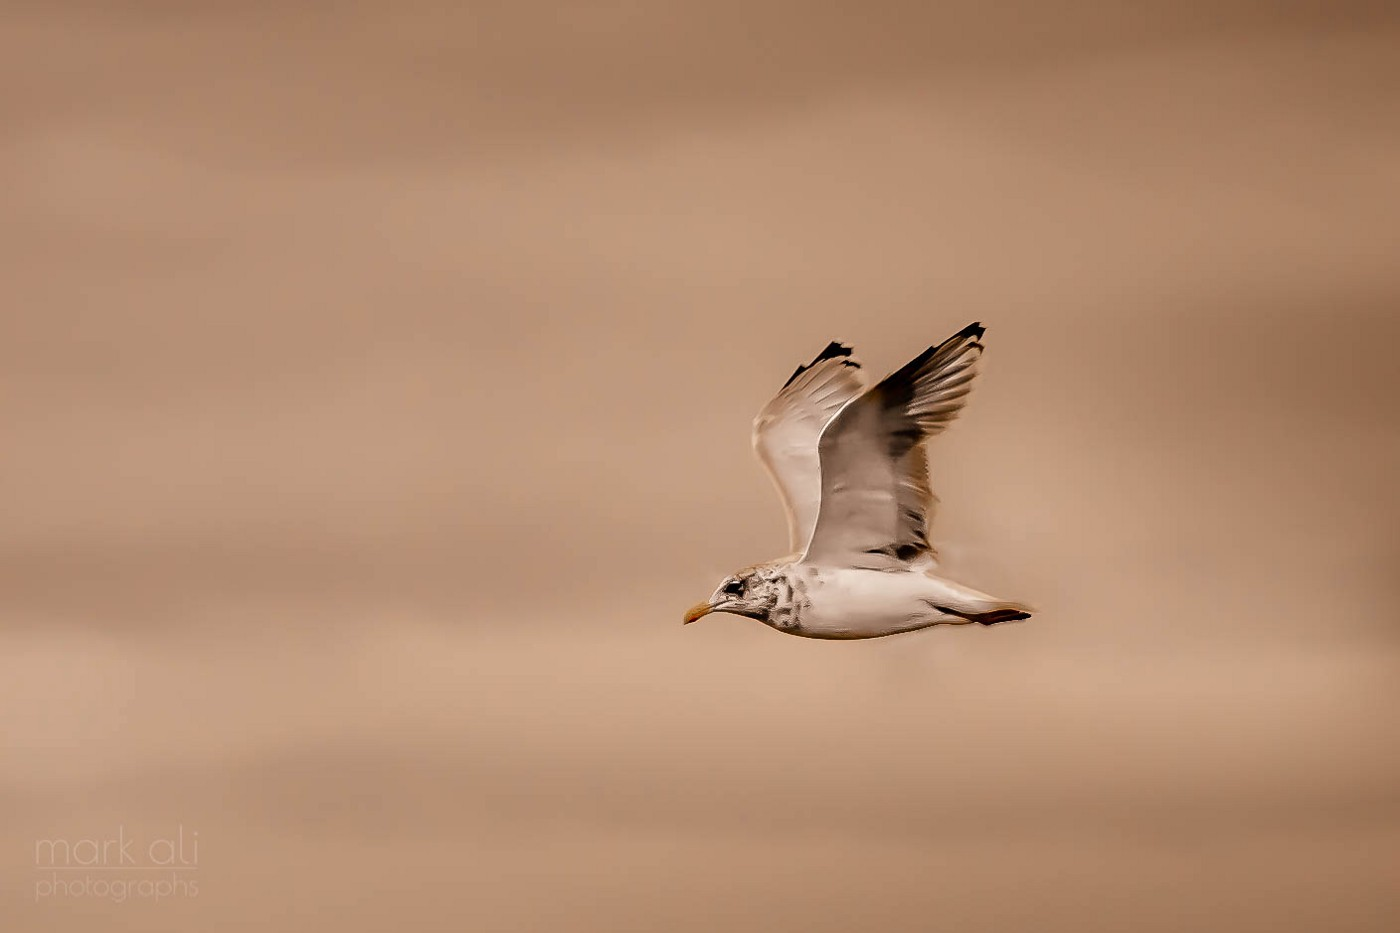 A seagull in flight, against a brown/sepia background.